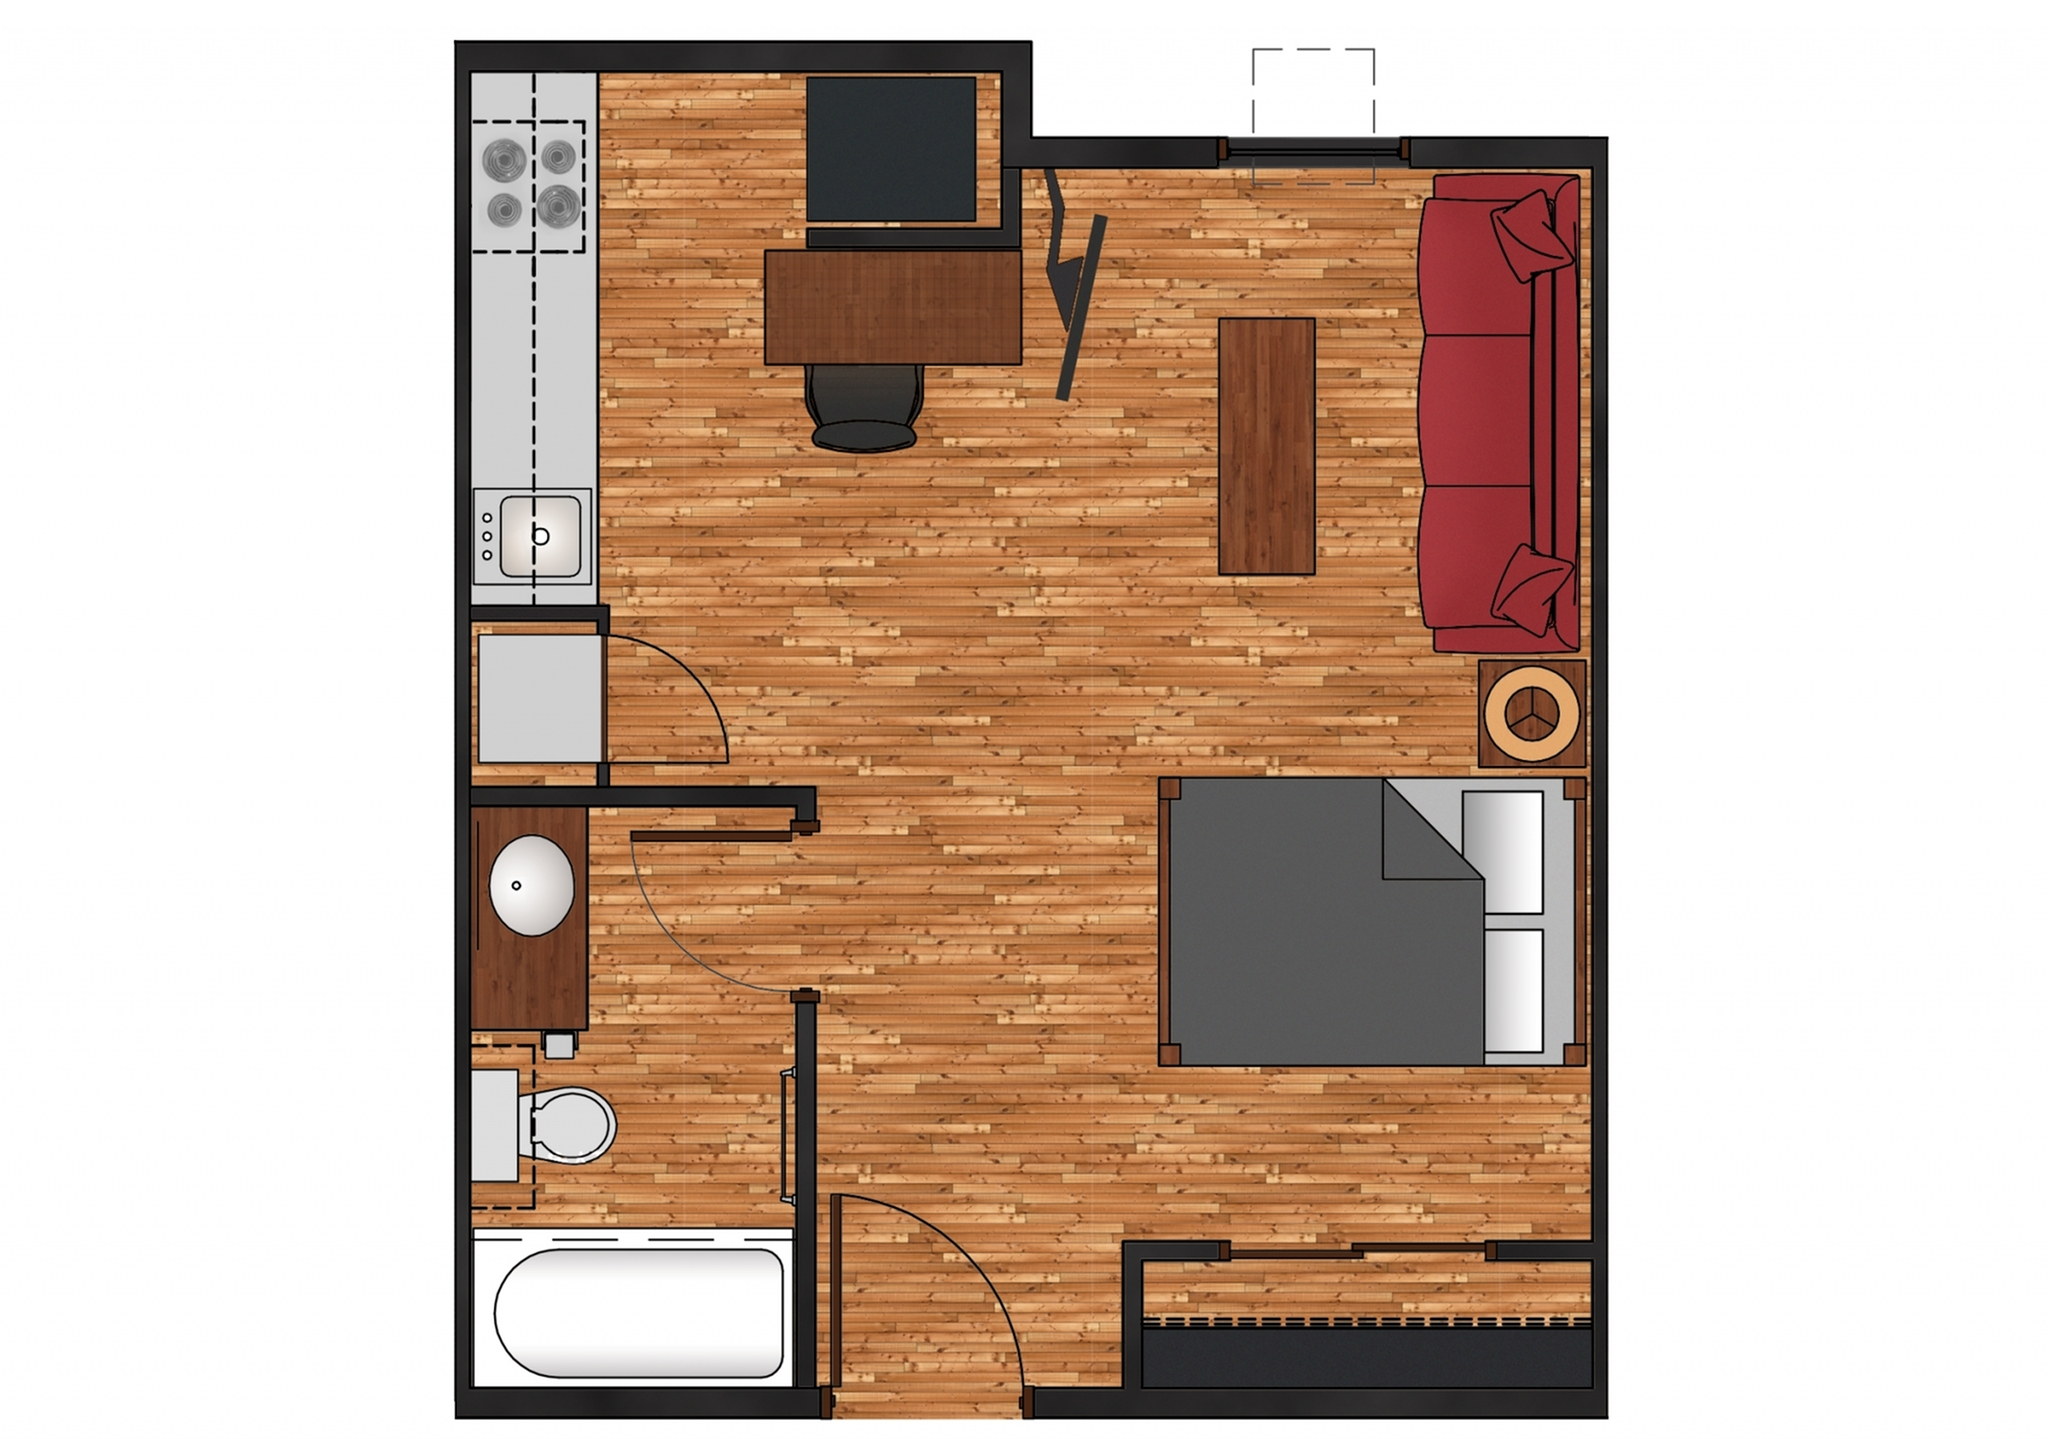 Studio, Apartment